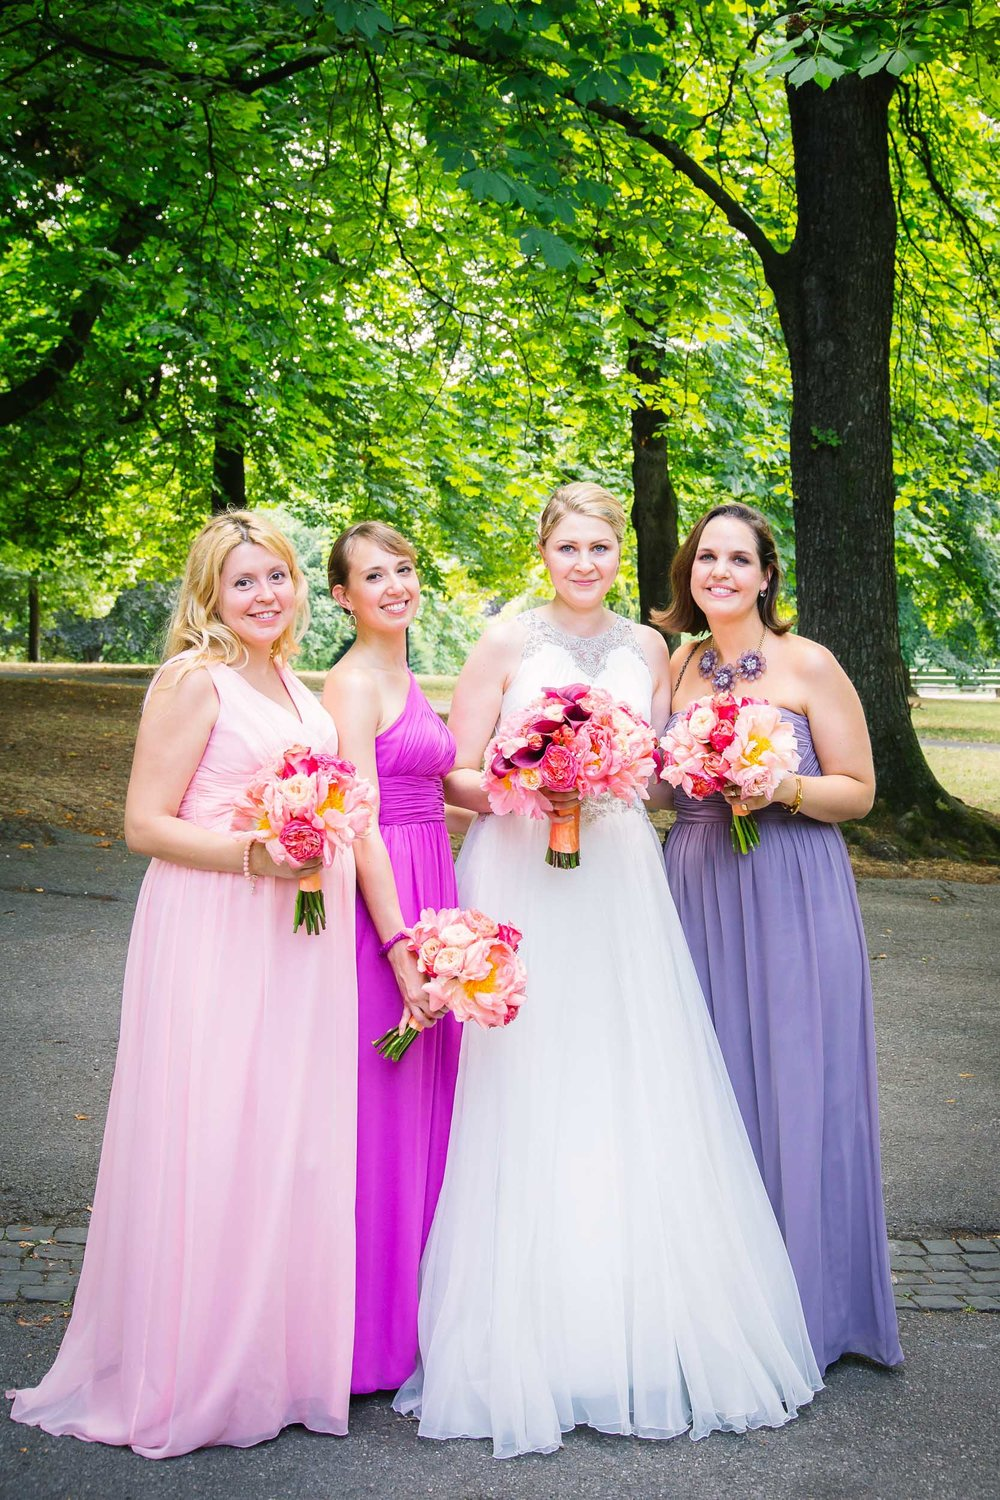 151-Elena-Goran-Wedding-3558-col.jpg